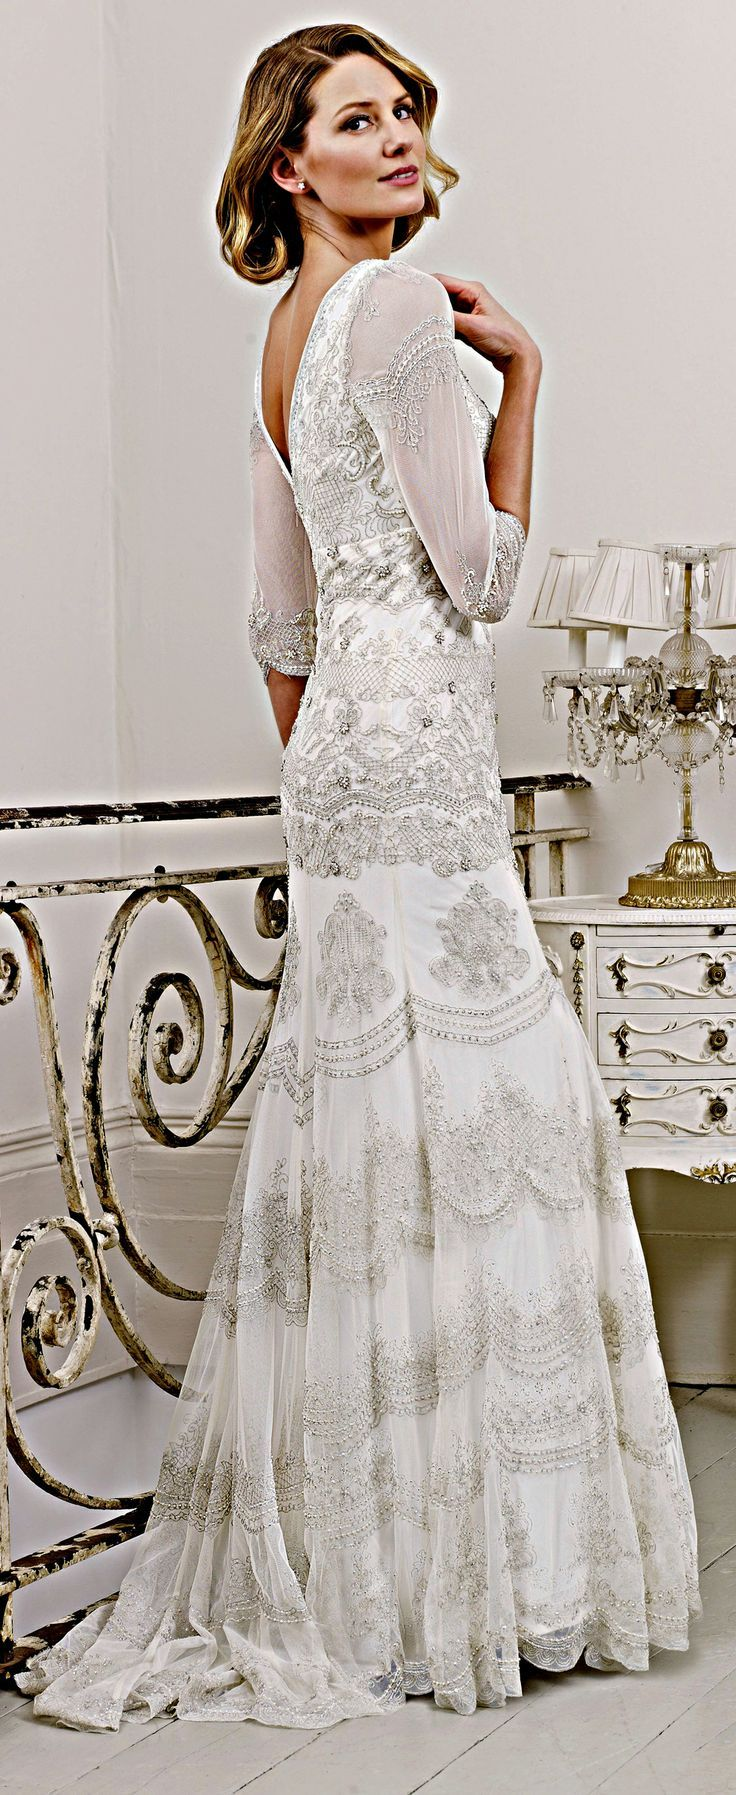 Wedding dresses for senior brides best wedding dresses for Older brides wedding dresses